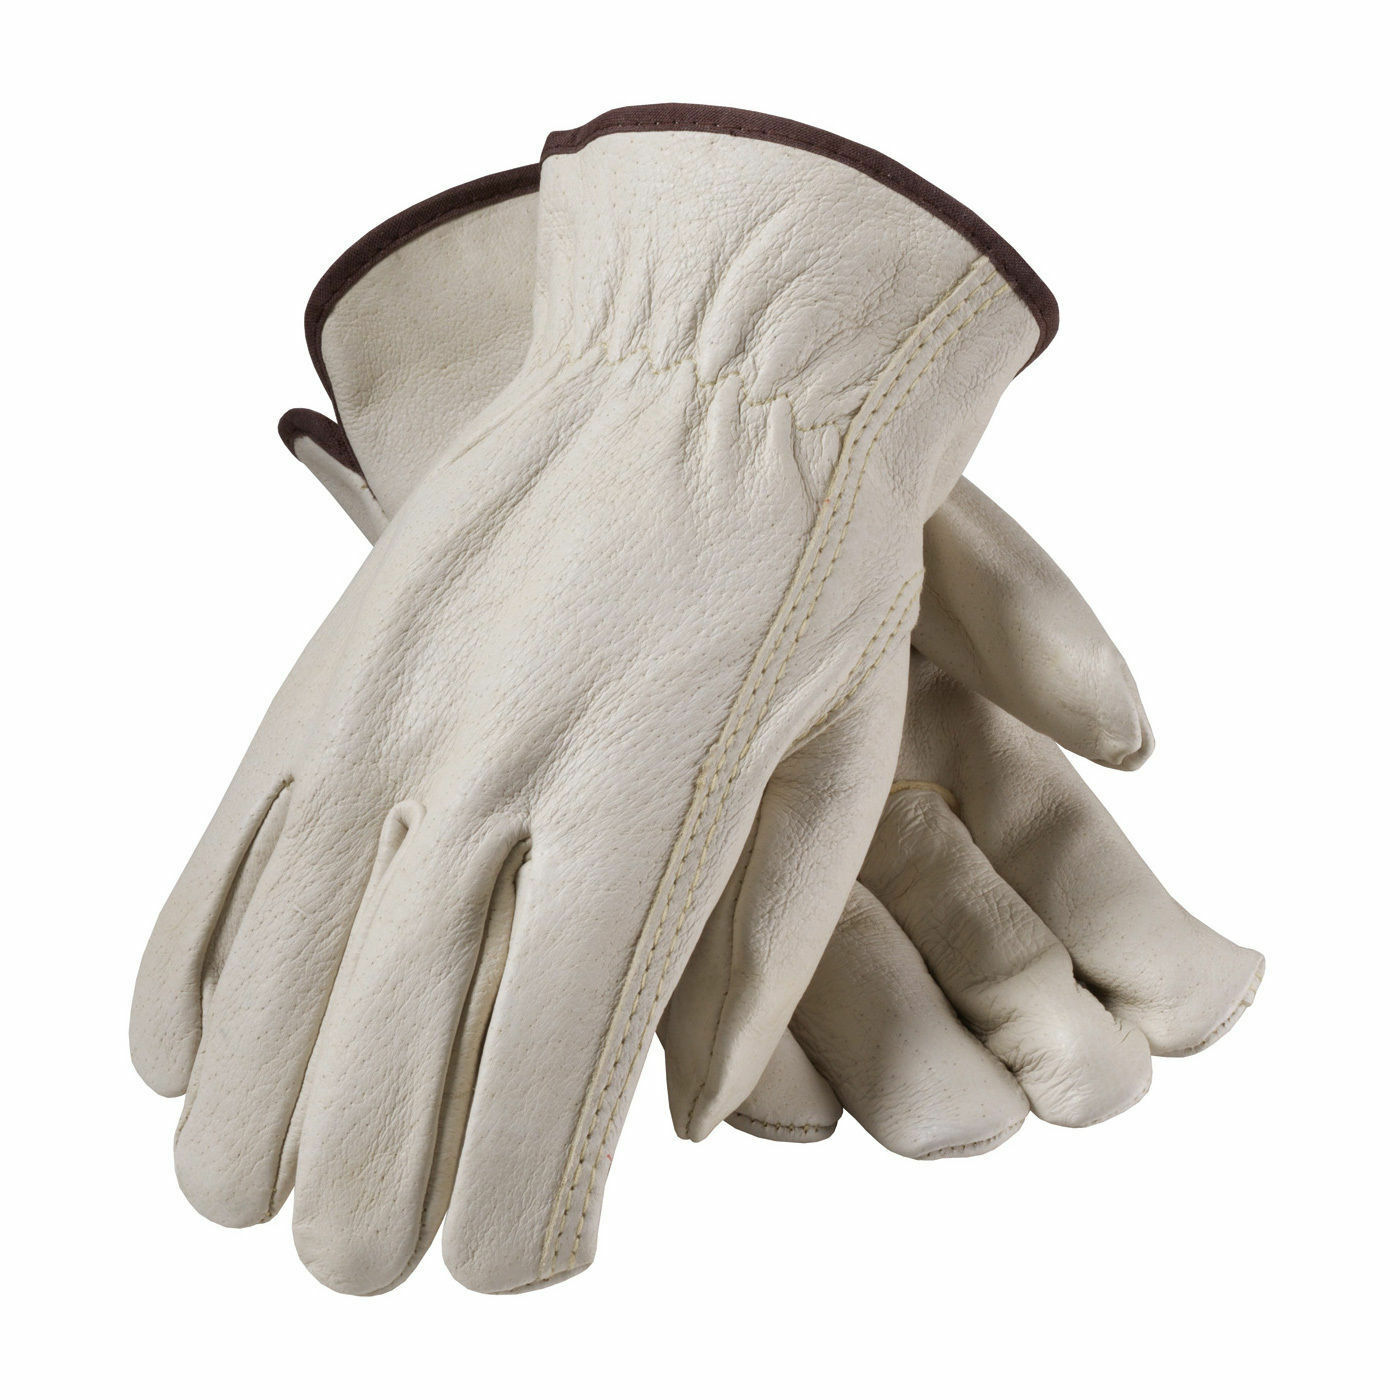 Goat leather work gloves - How To Choose The Best Leather Gloves For Work